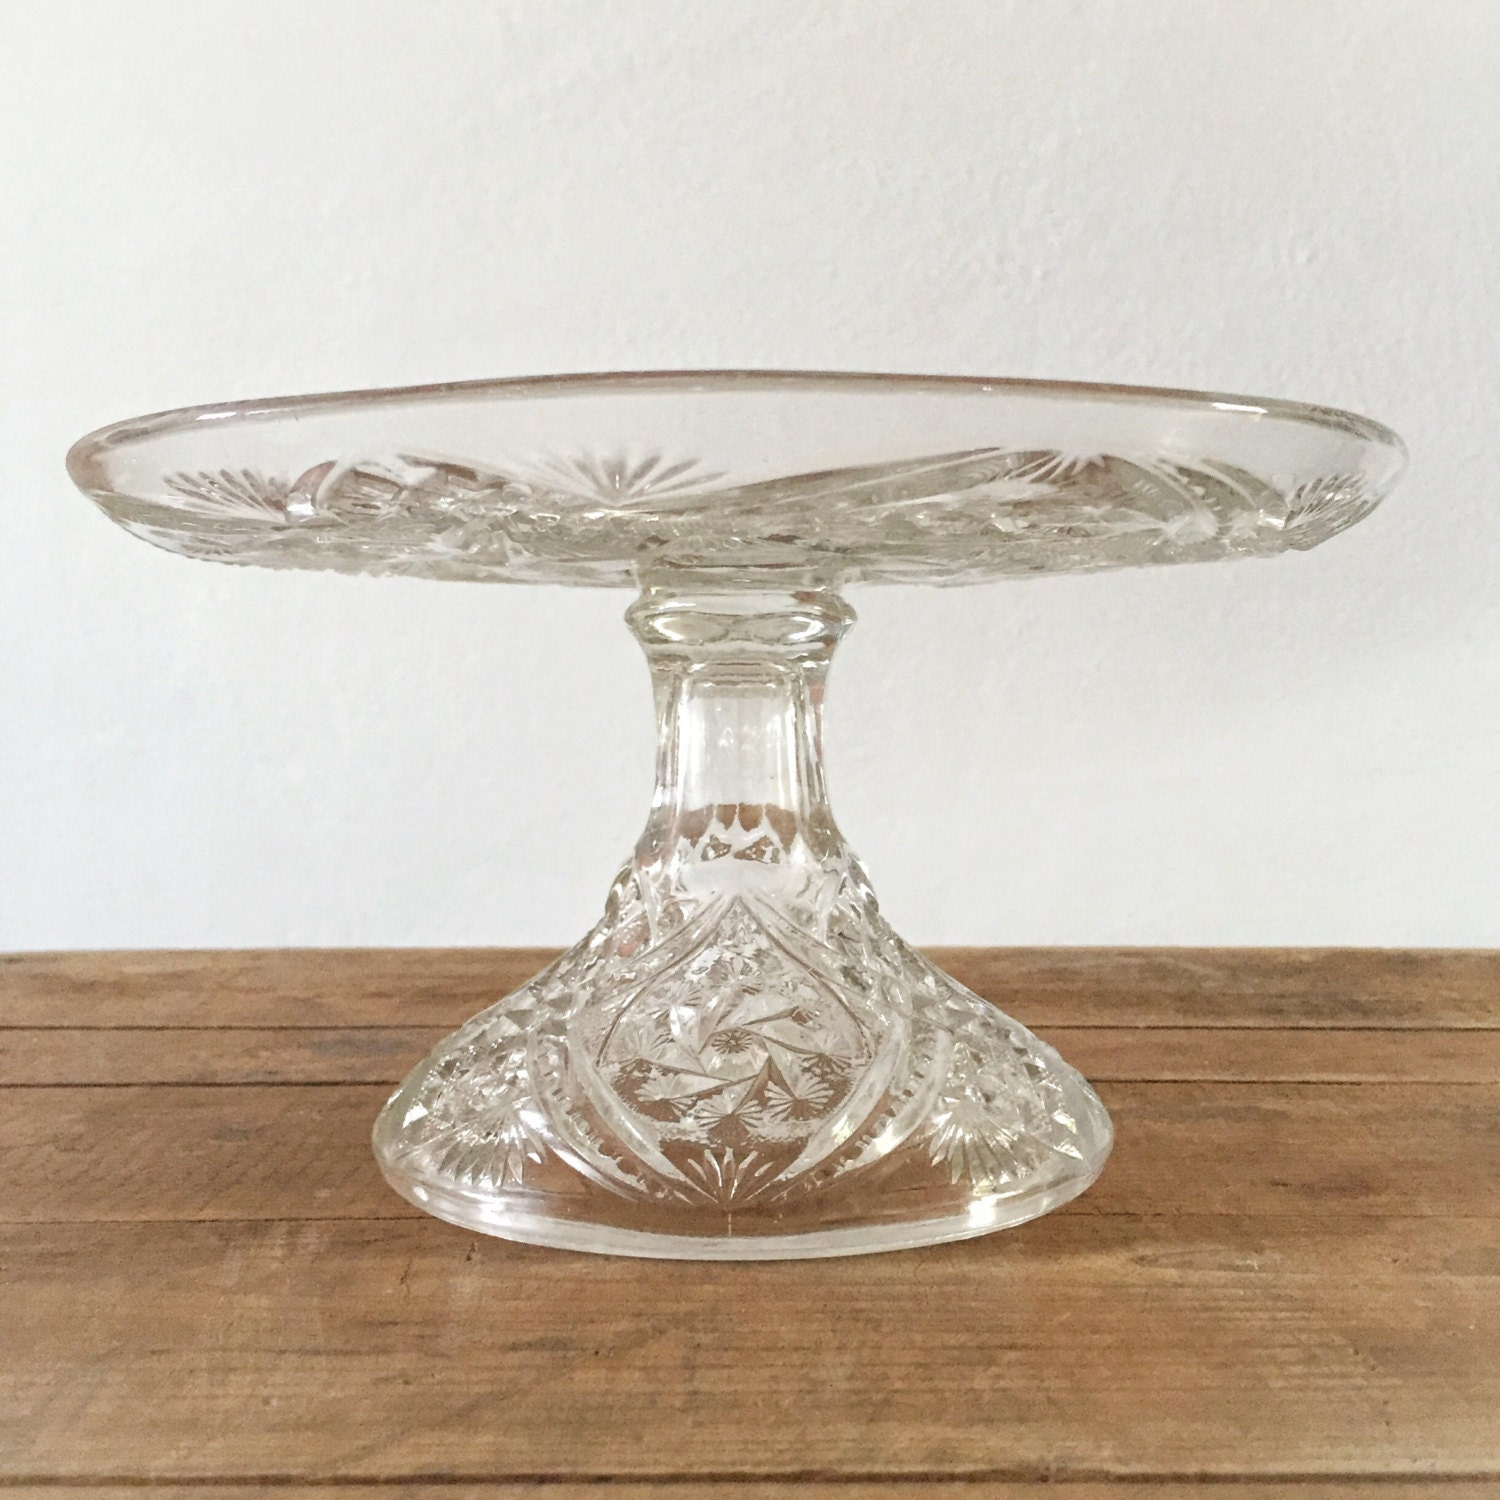 Art Deco Glass Cake Stand : Vintage Cake Stand Art Deco Cut Clear Glass Pedestal Tall Cake